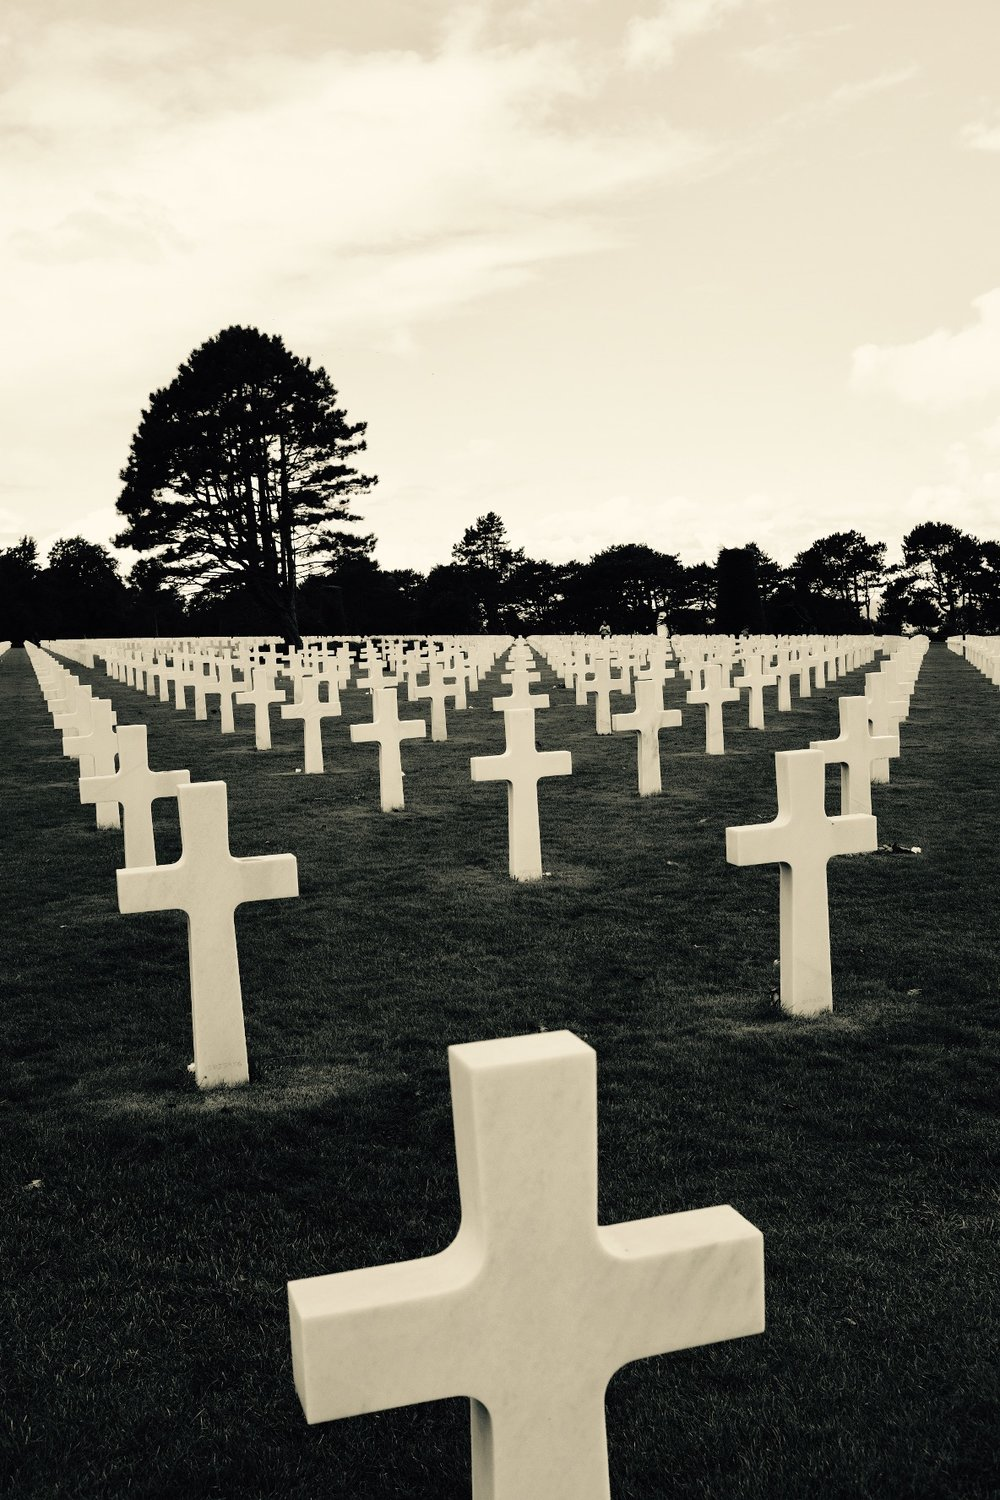 The brave souls at the American Normandy cemetery who didn't get so lucky. What a humbling sight.